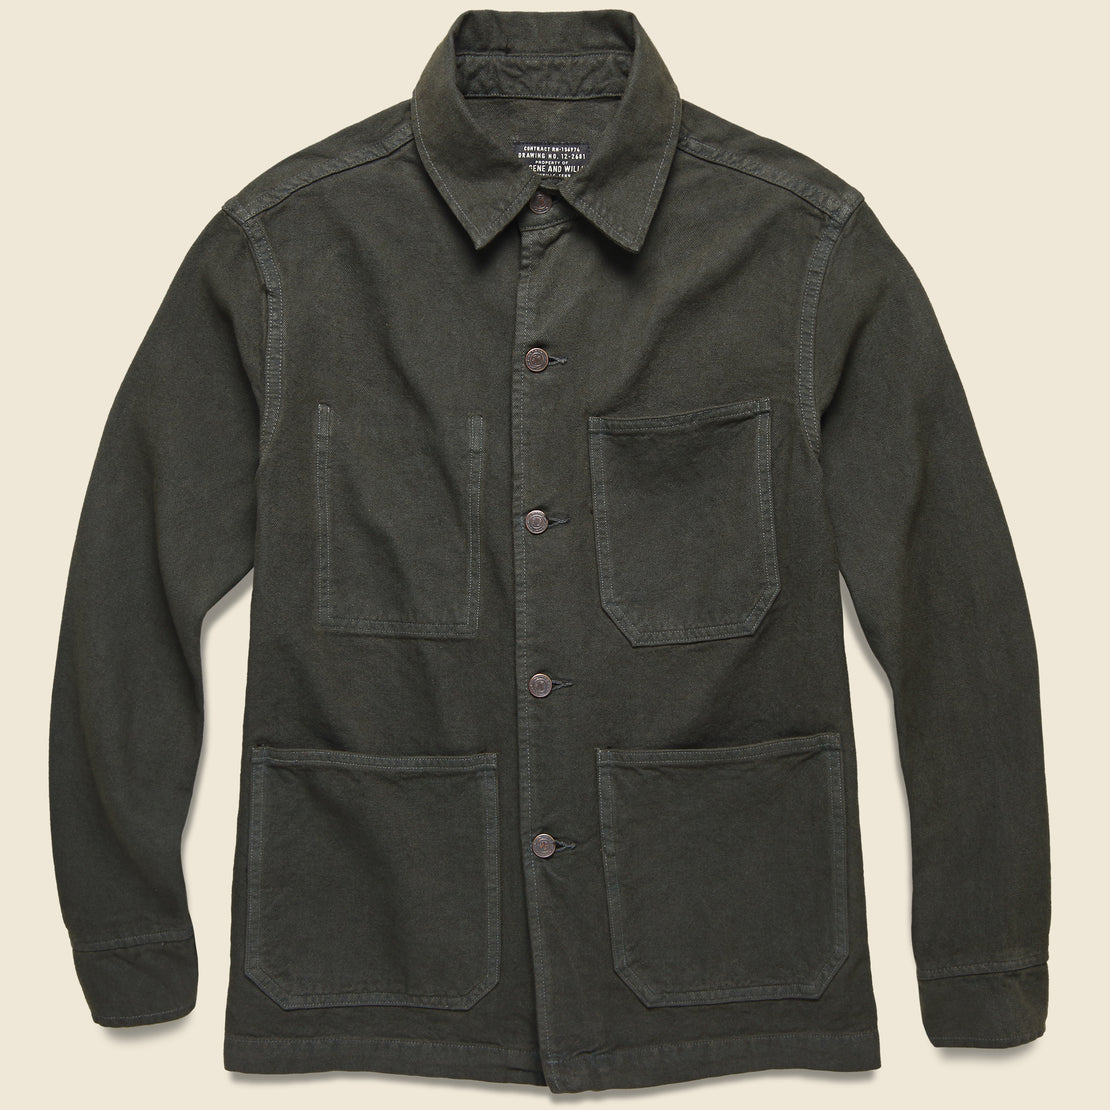 Imogene + Willie Jack Shirt Jacket - Over-Dyed Black